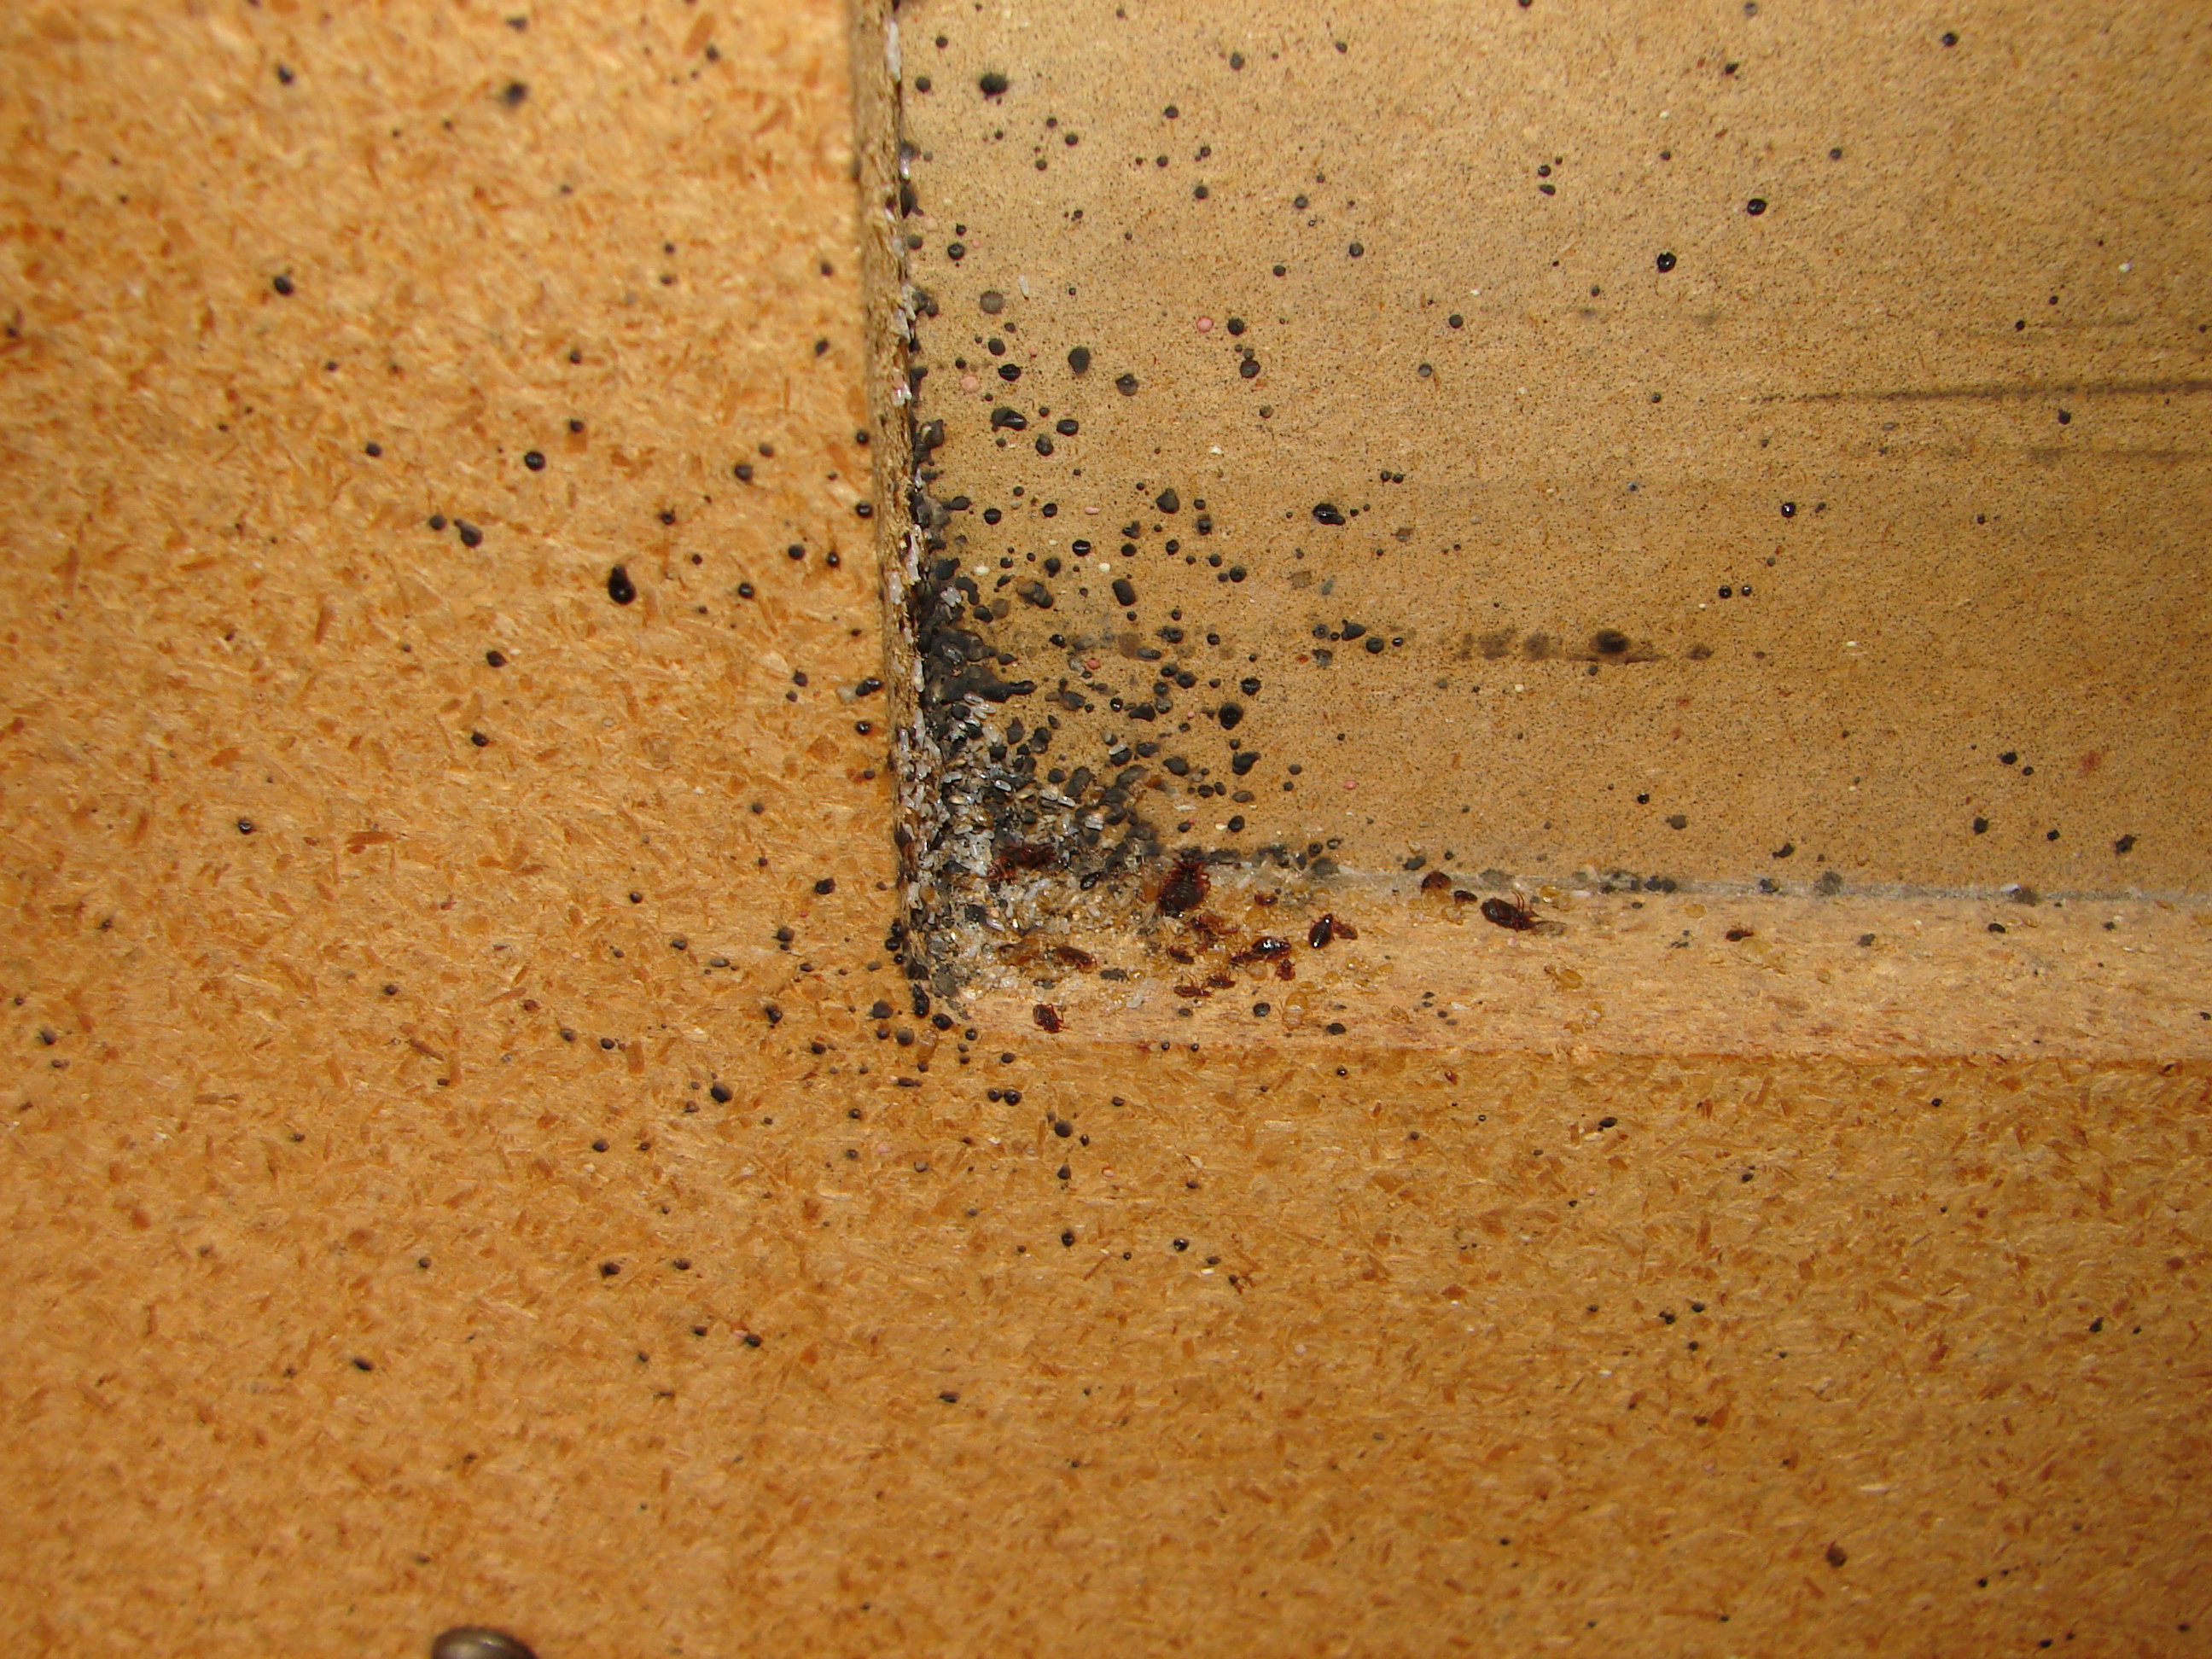 Bed bugs on the underside of furniture bed bugs How to remove bed bugs from couch